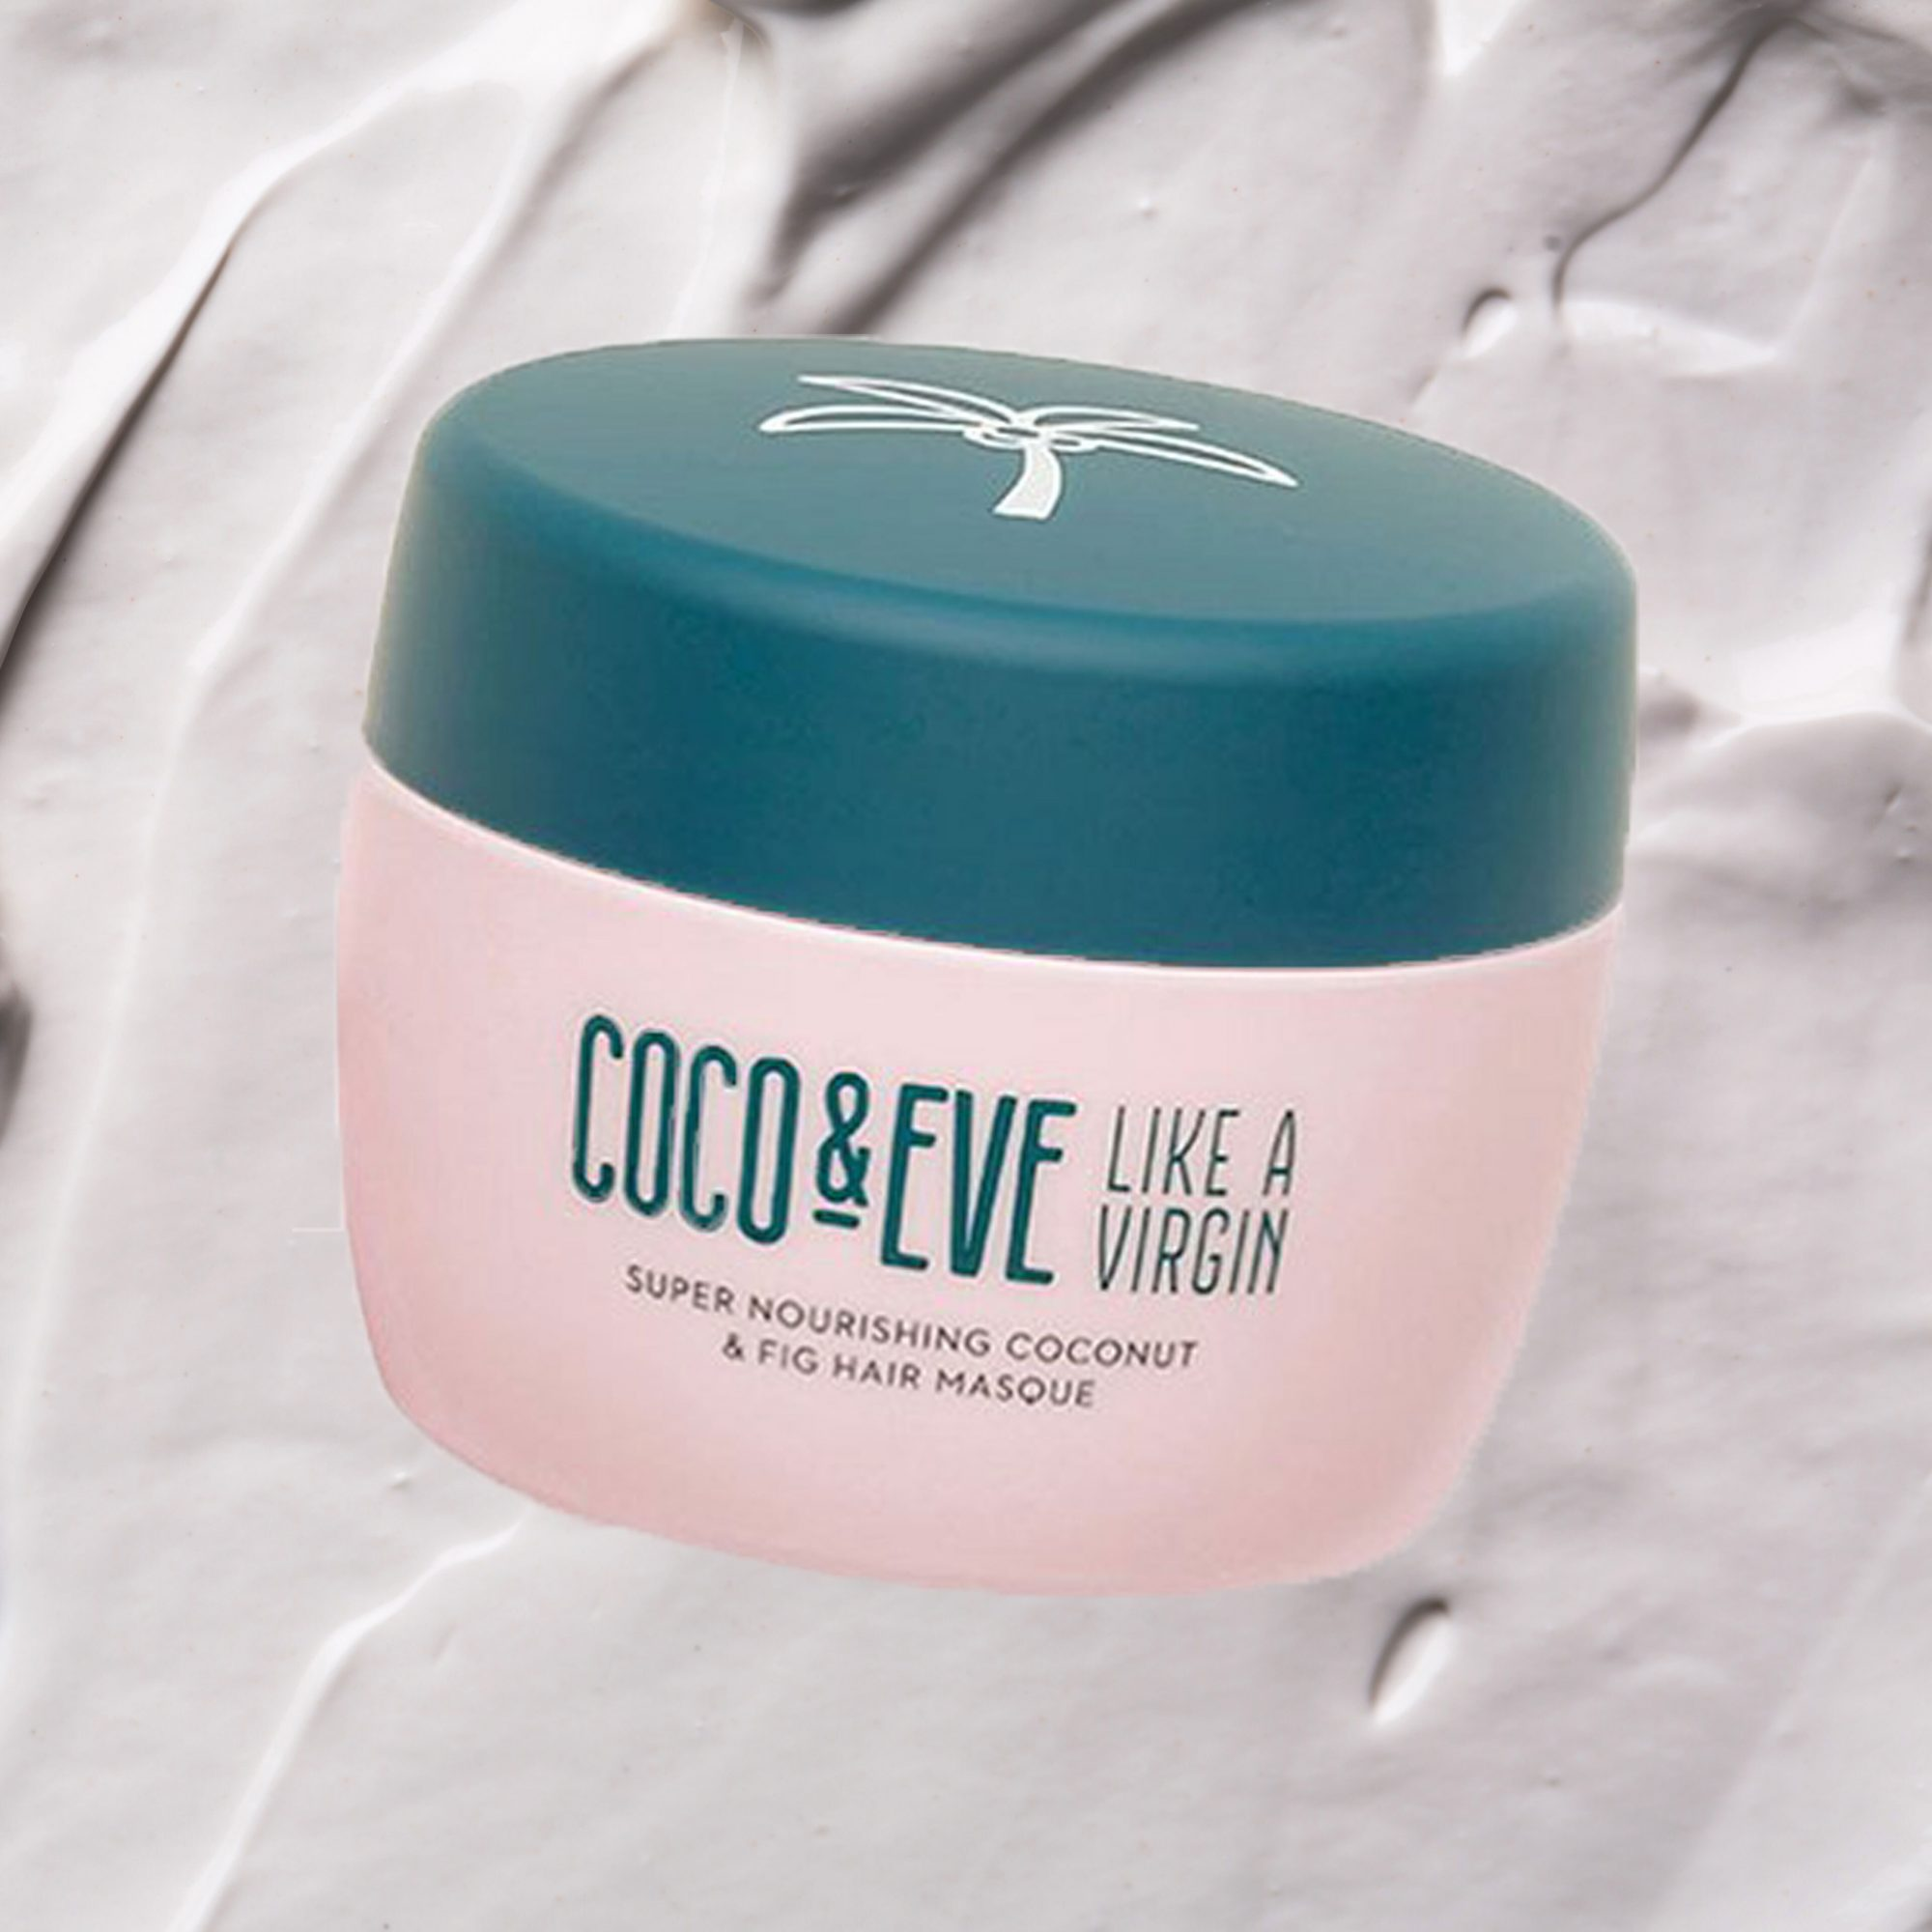 Coco and Eve Like a Virgin Hair Masque